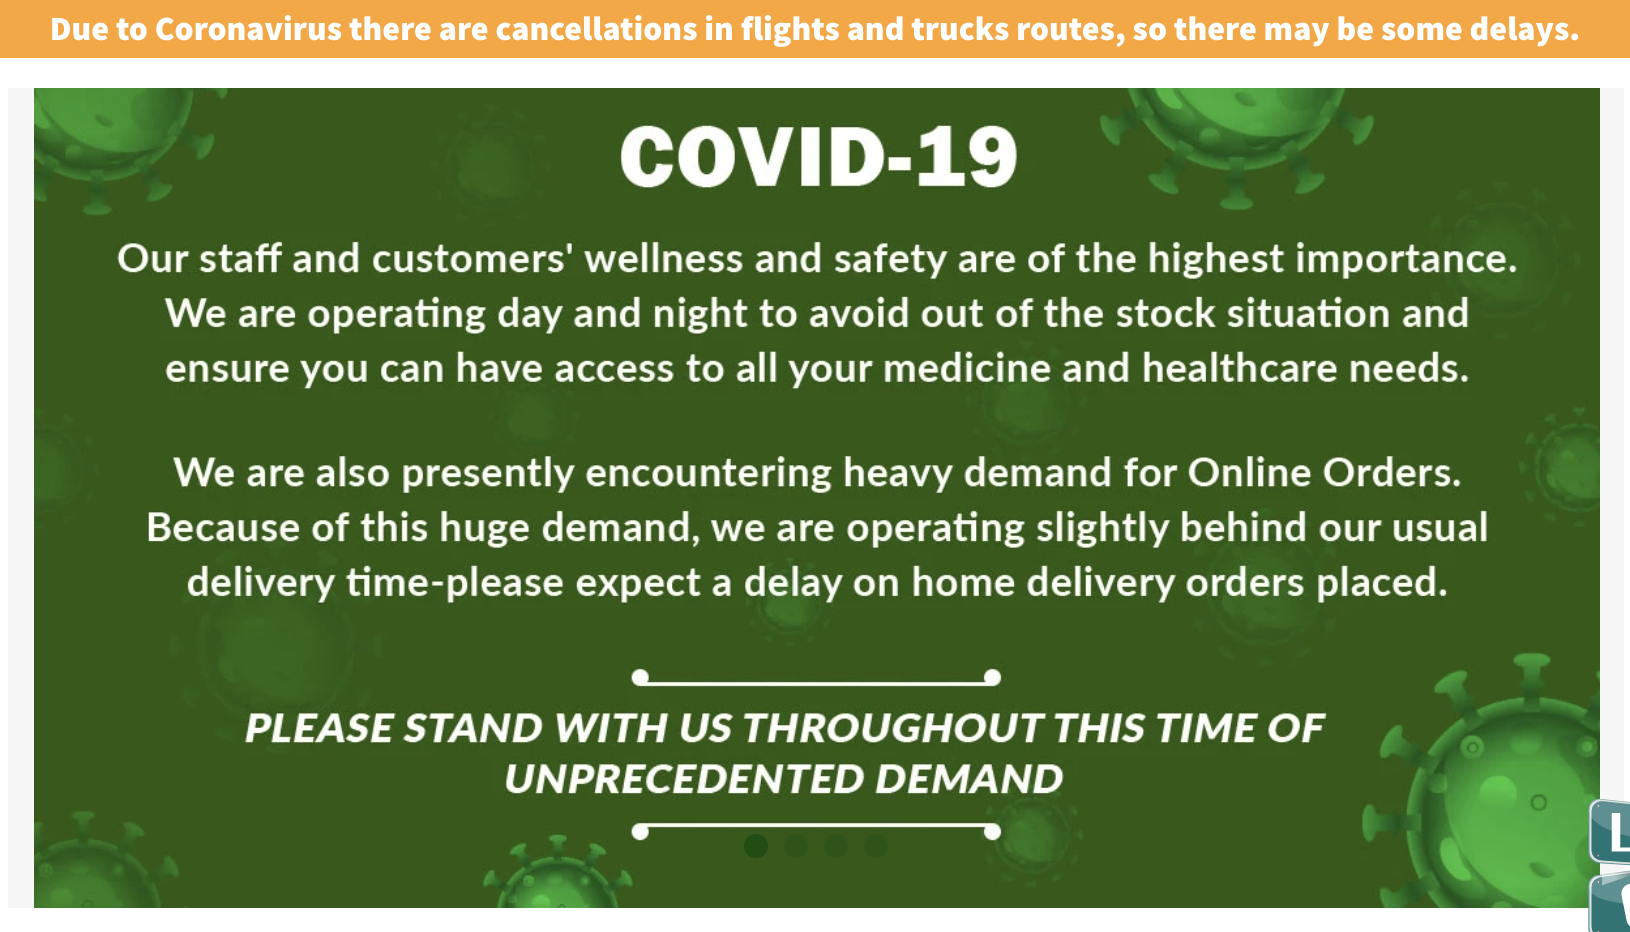 covid-19 information banner